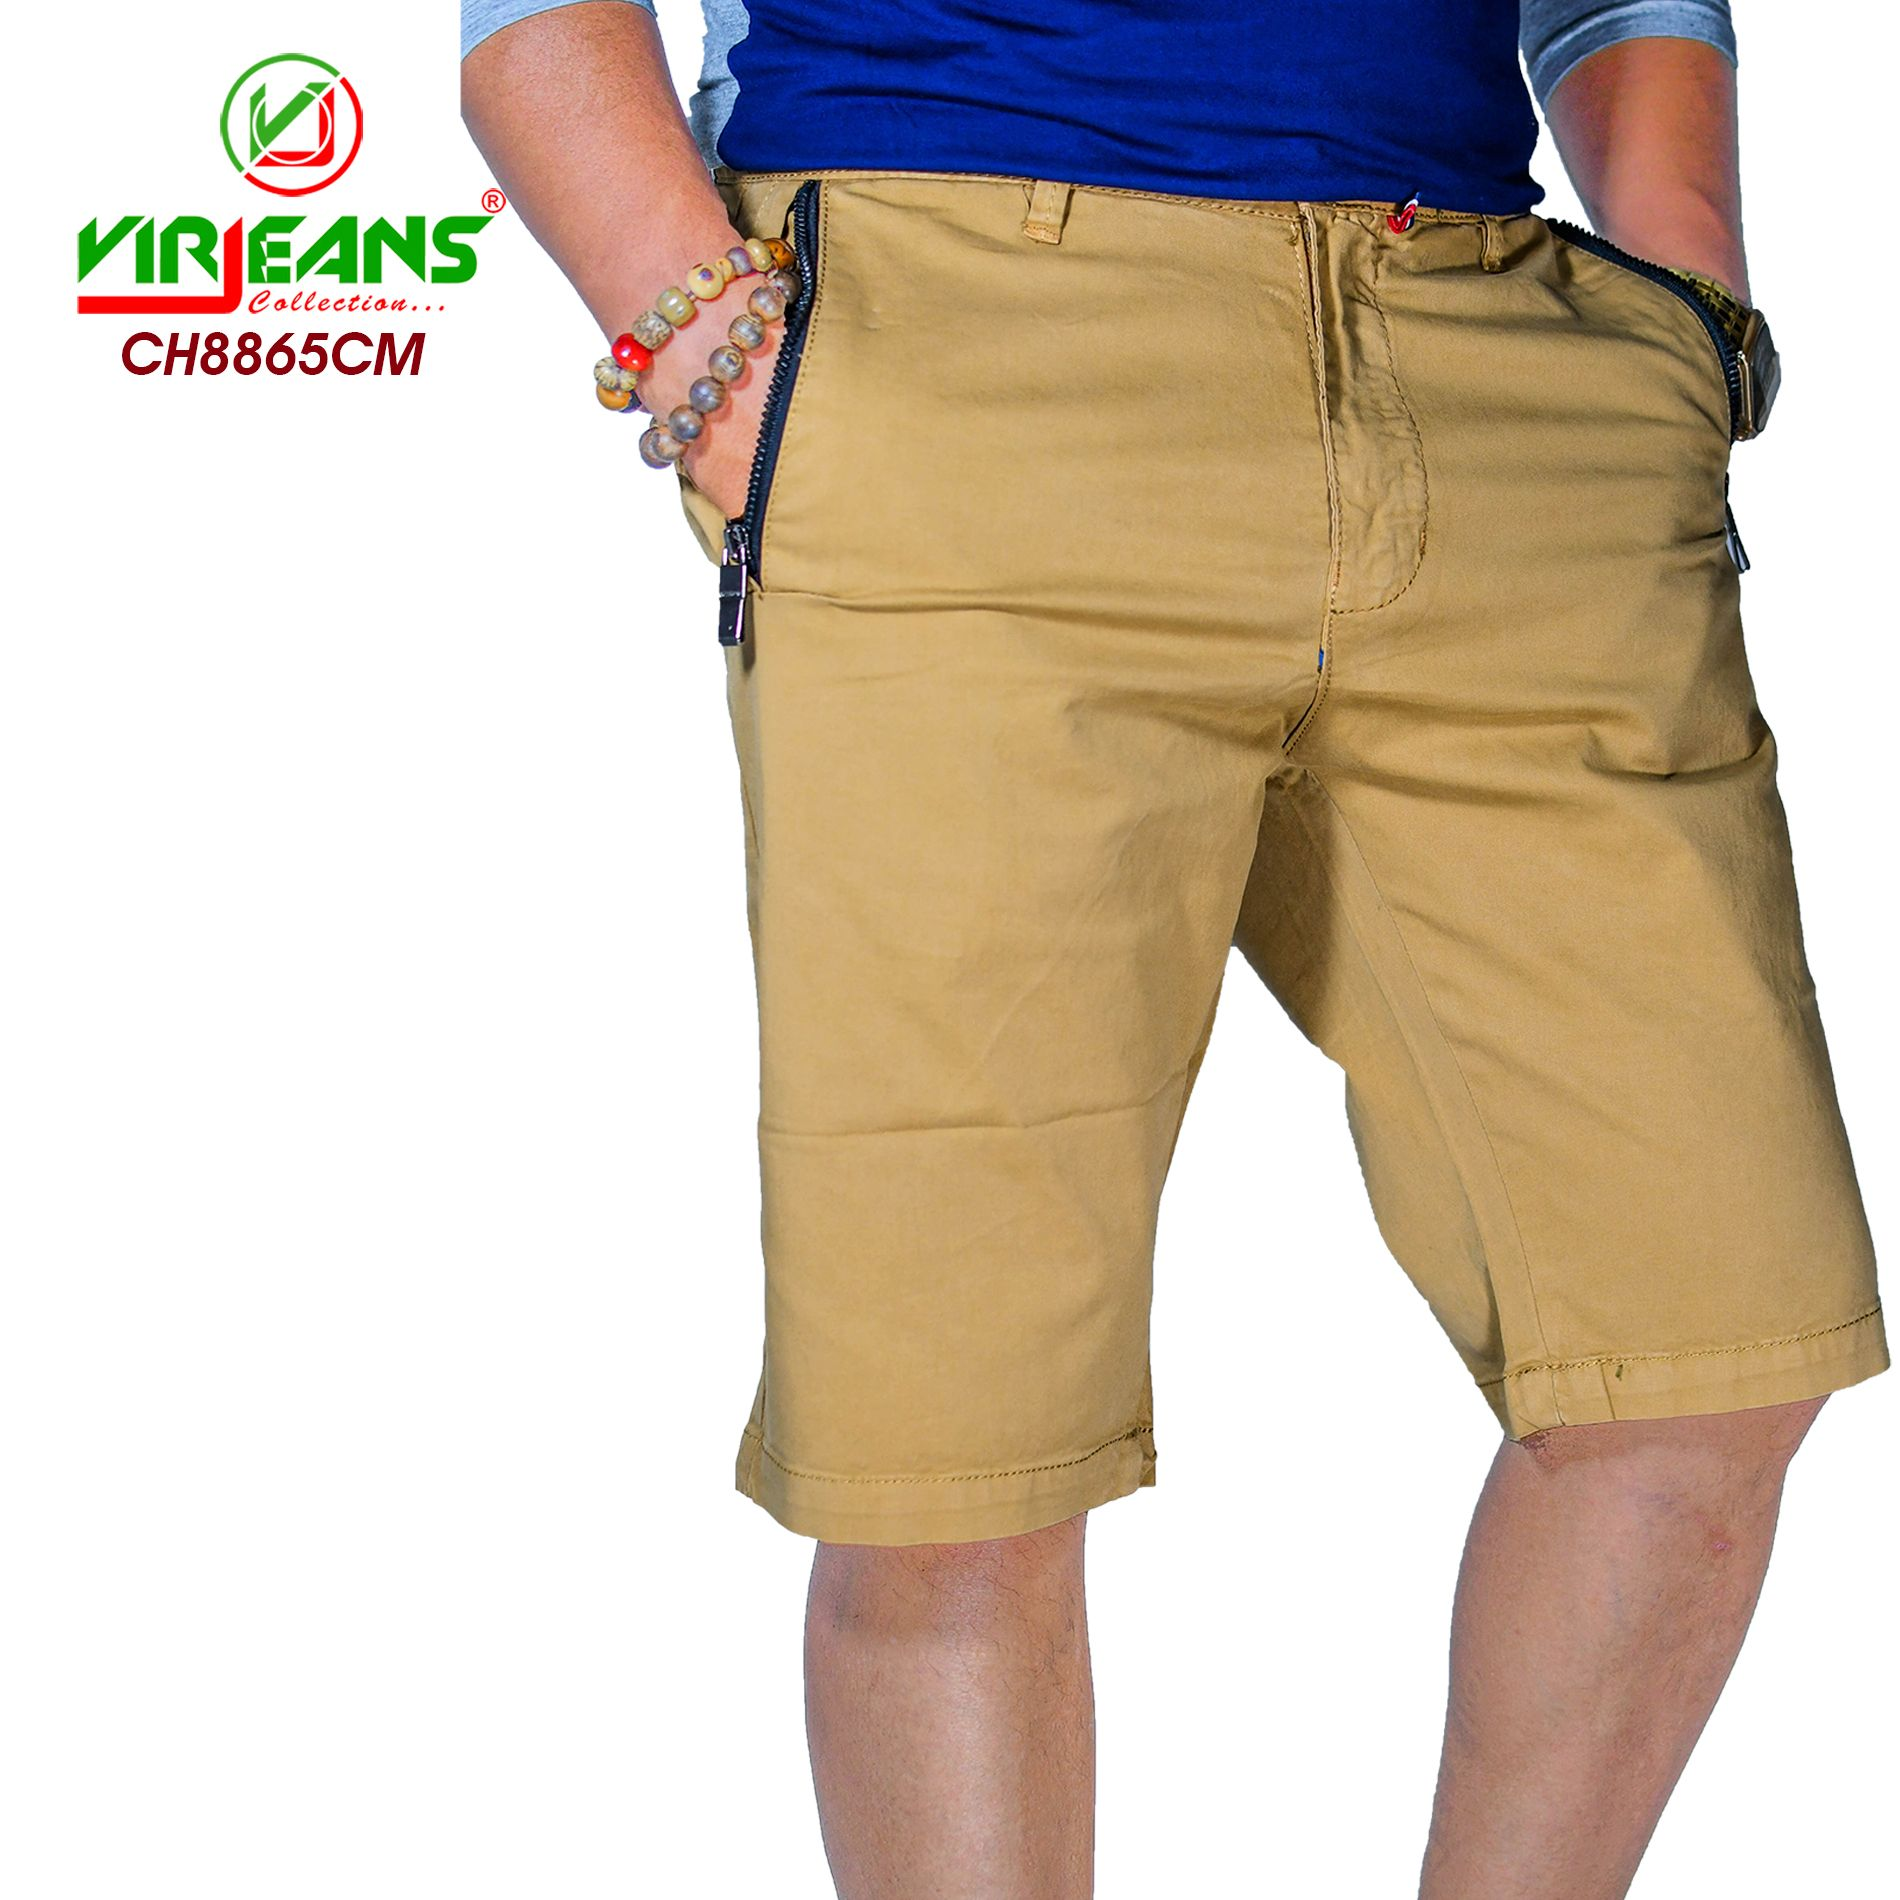 Virjeans Top Nepali Product Men S Shorts Cotton Half Pant Ch 8865 Cream In Nepal Fashion Pants Mens Shorts Fashion